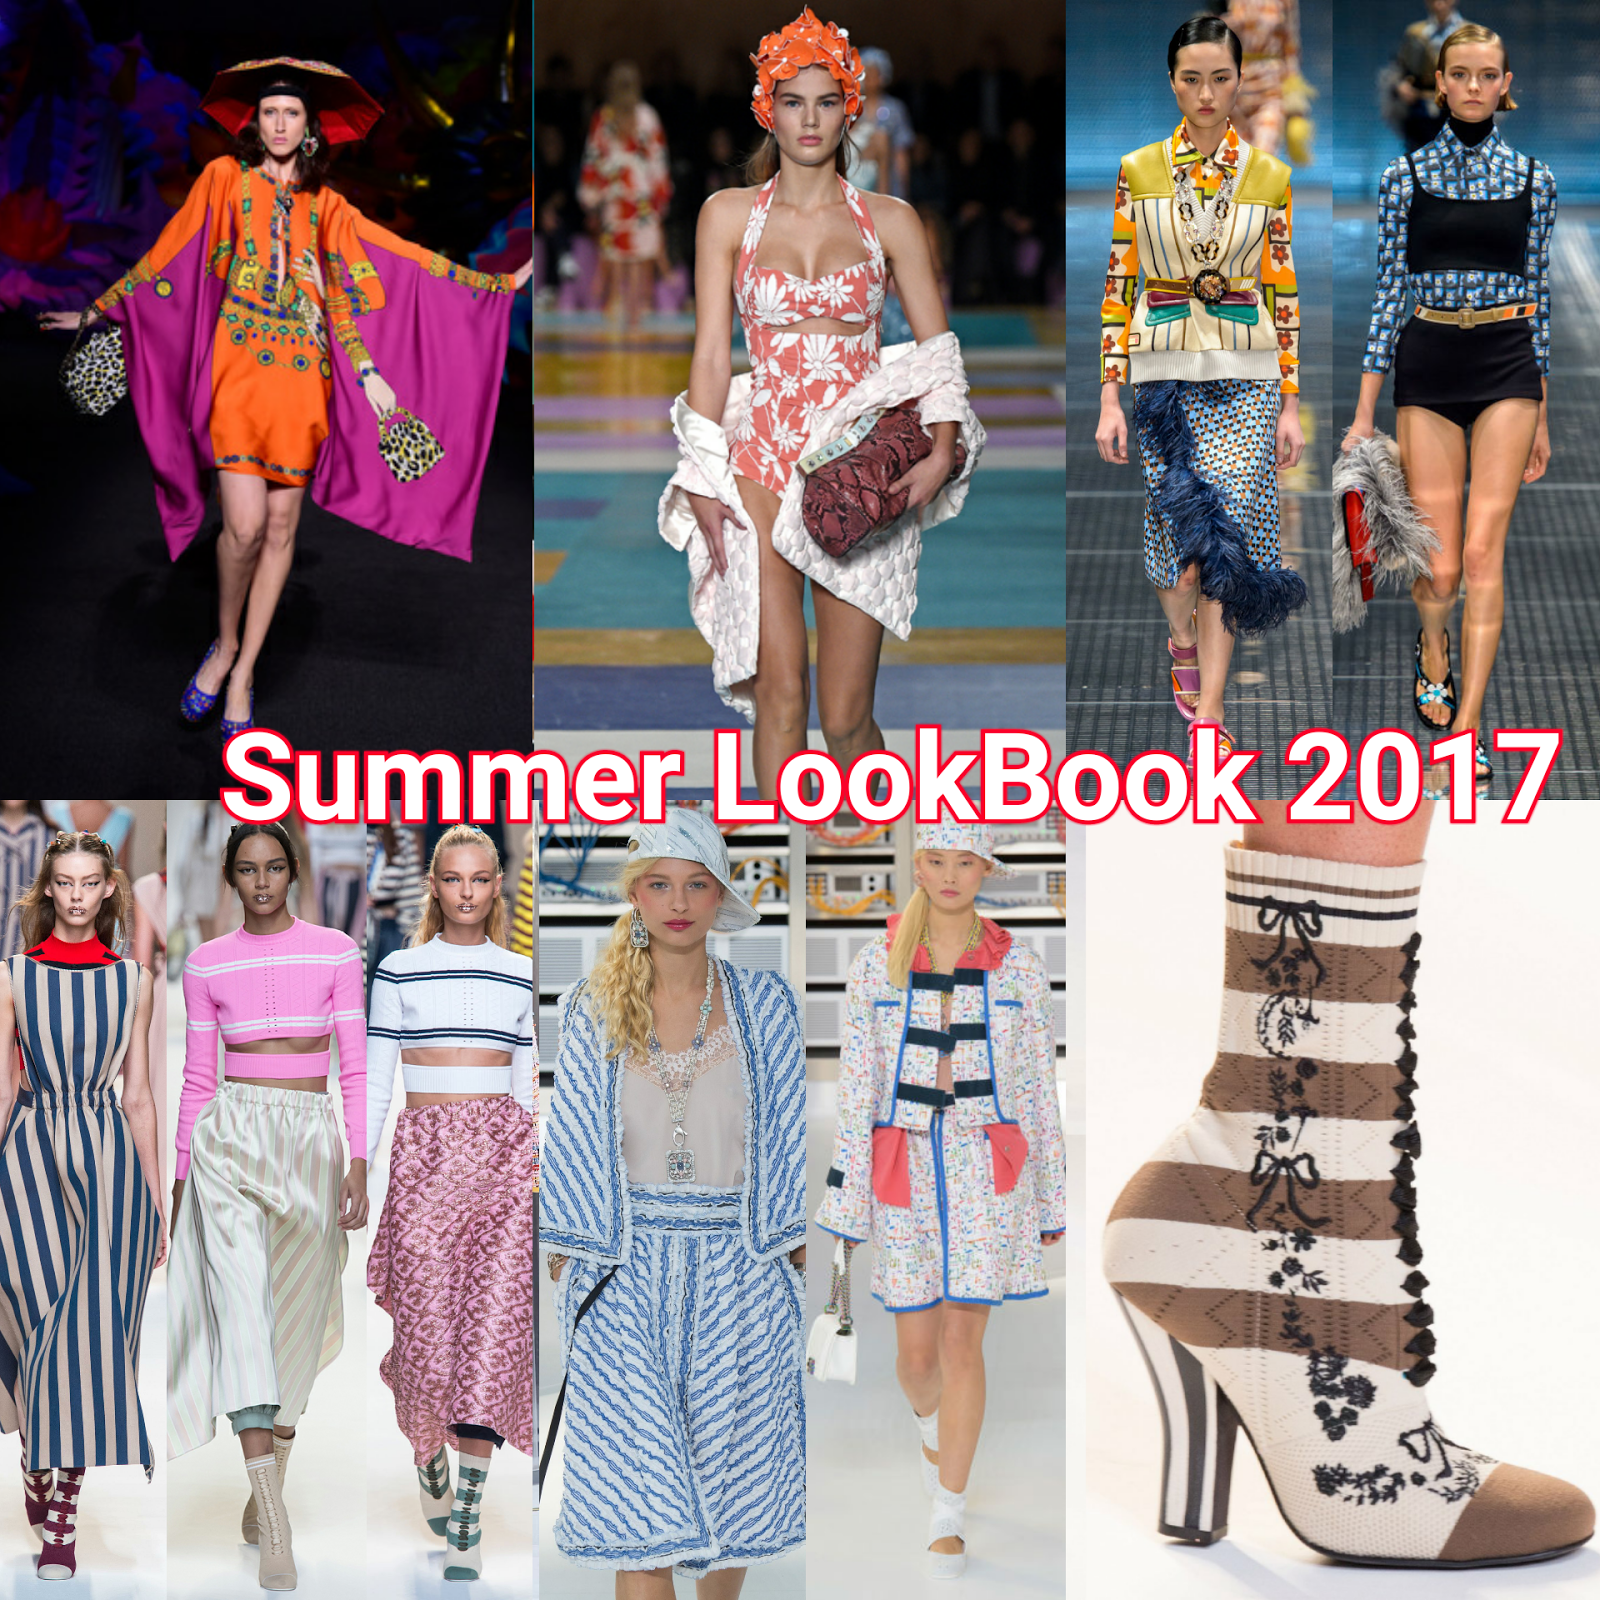 Summer Look 2017: l'imperativo è Osare! Per un'estate al massimo con stile